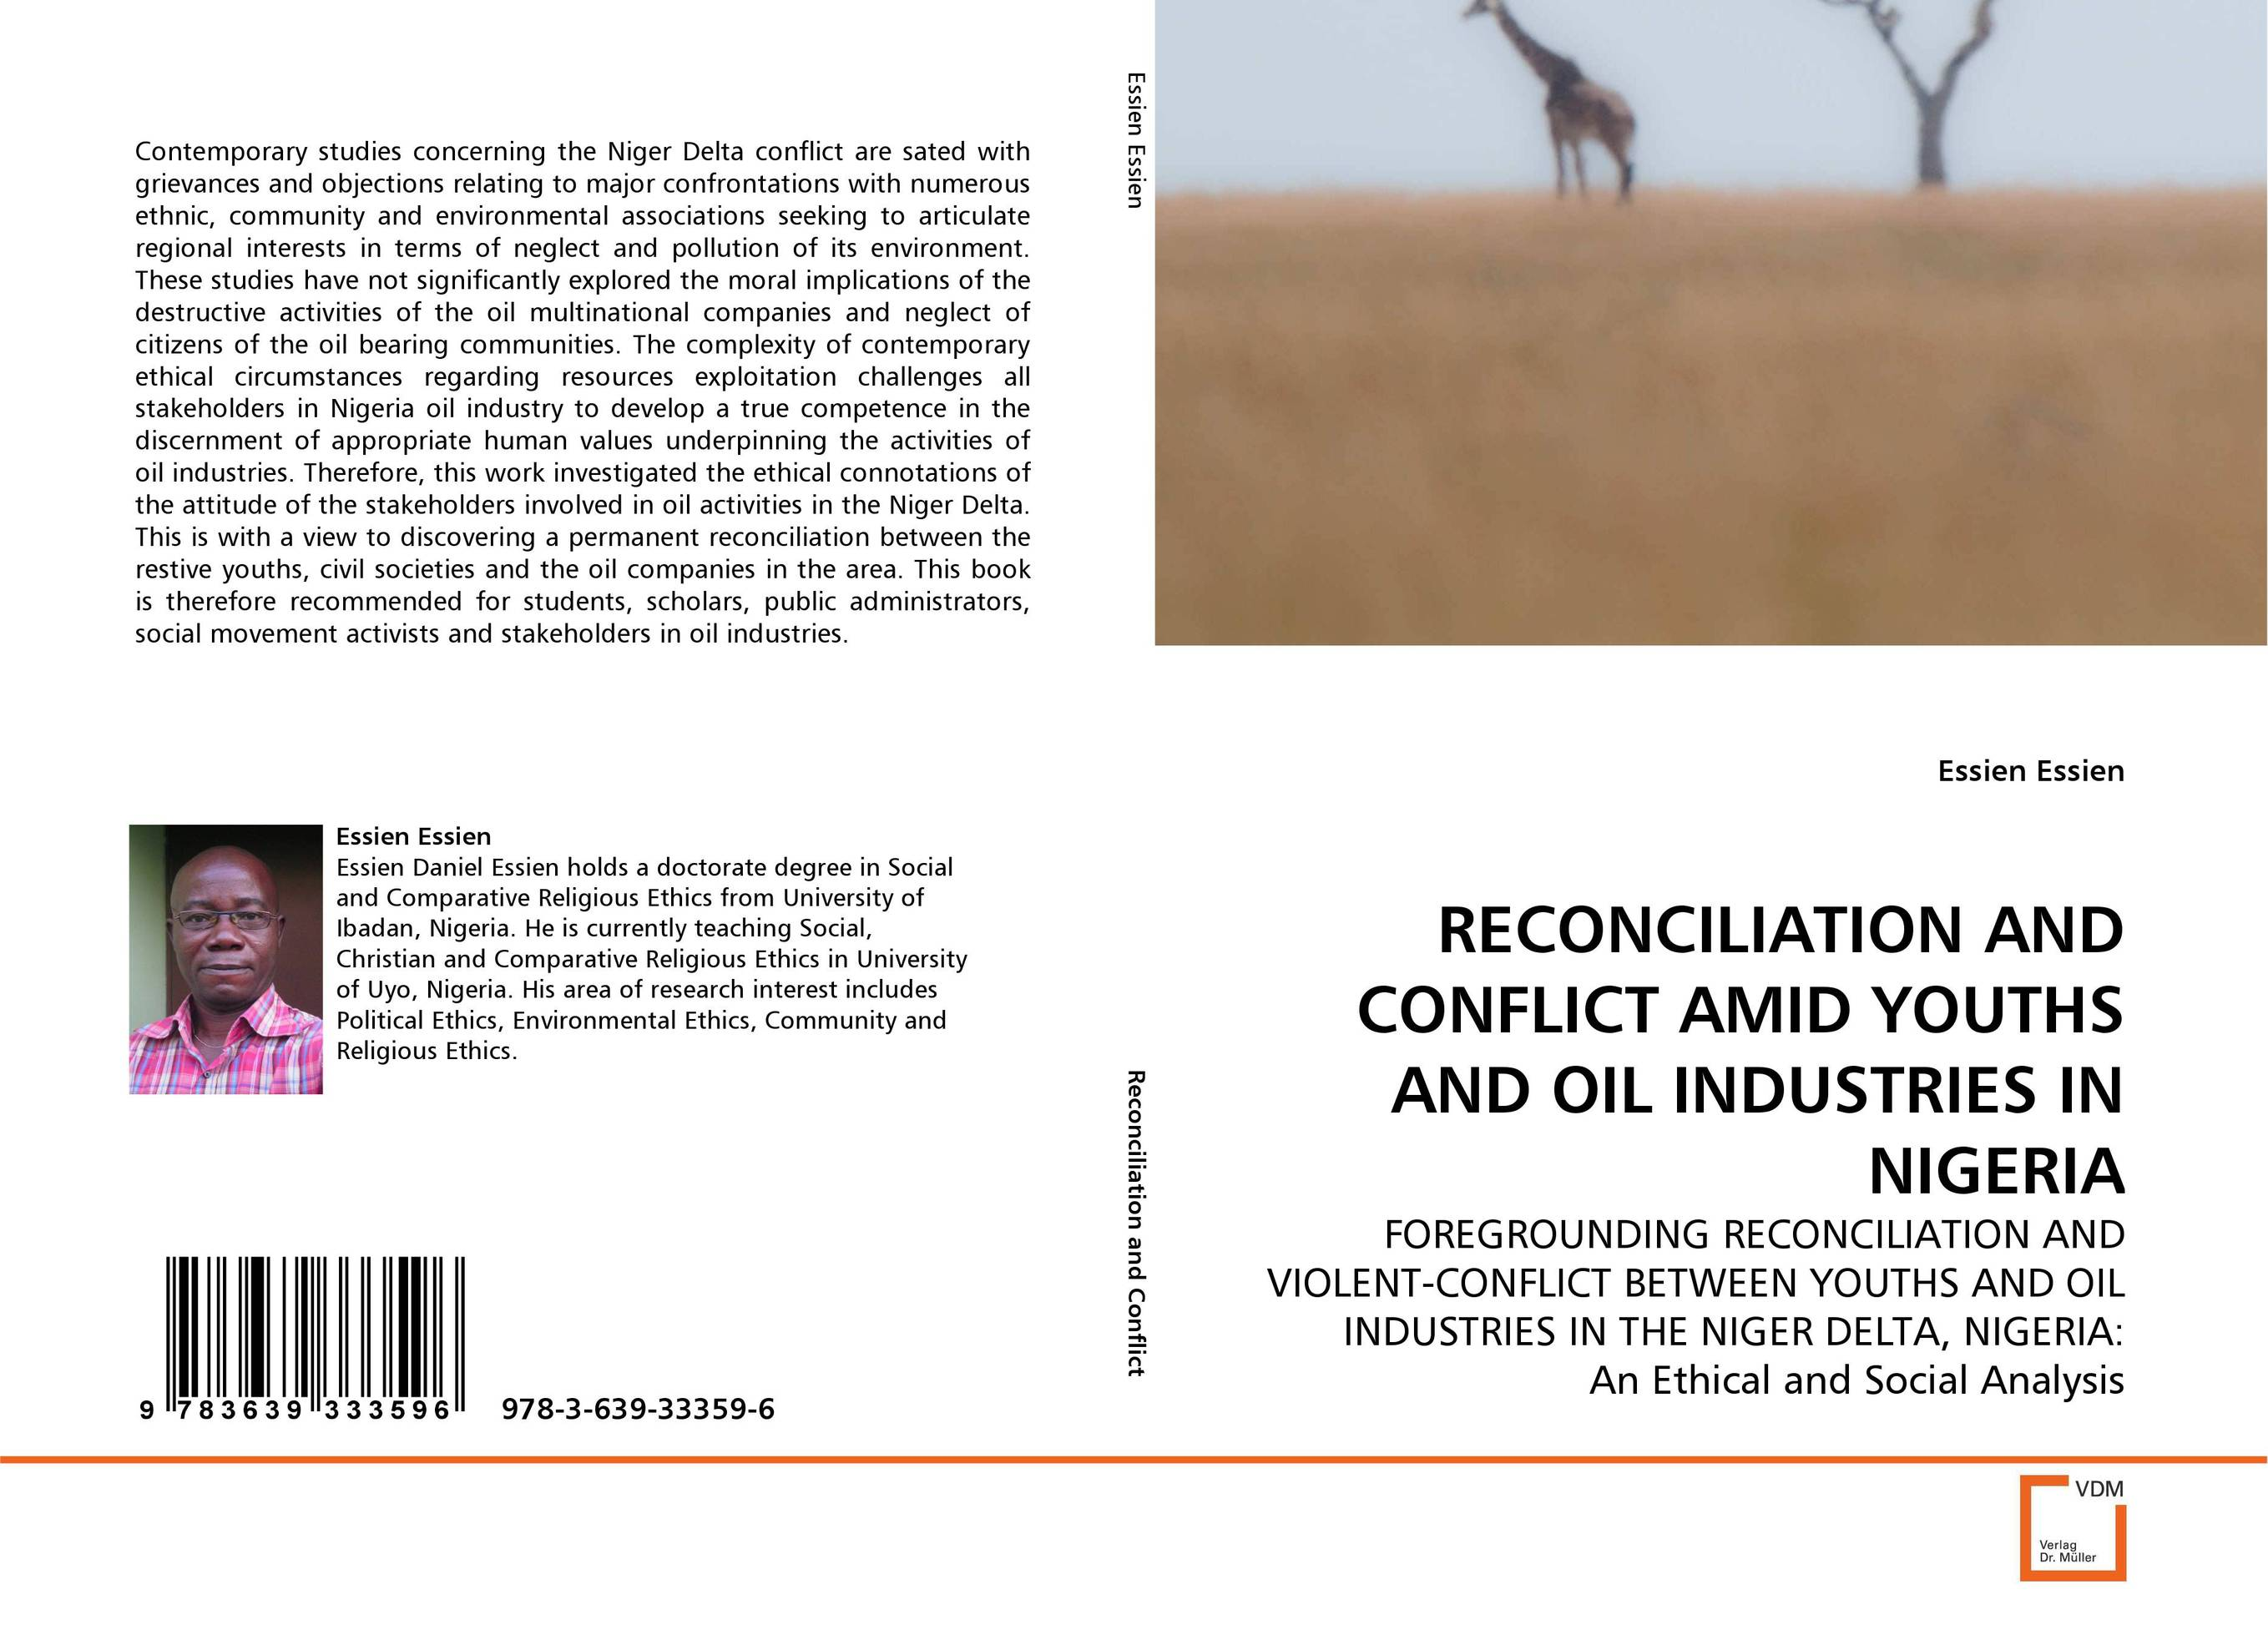 RECONCILIATION AND CONFLICT AMID YOUTHS AND OIL INDUSTRIES IN NIGERIA voluntary associations in tsarist russia – science patriotism and civil society